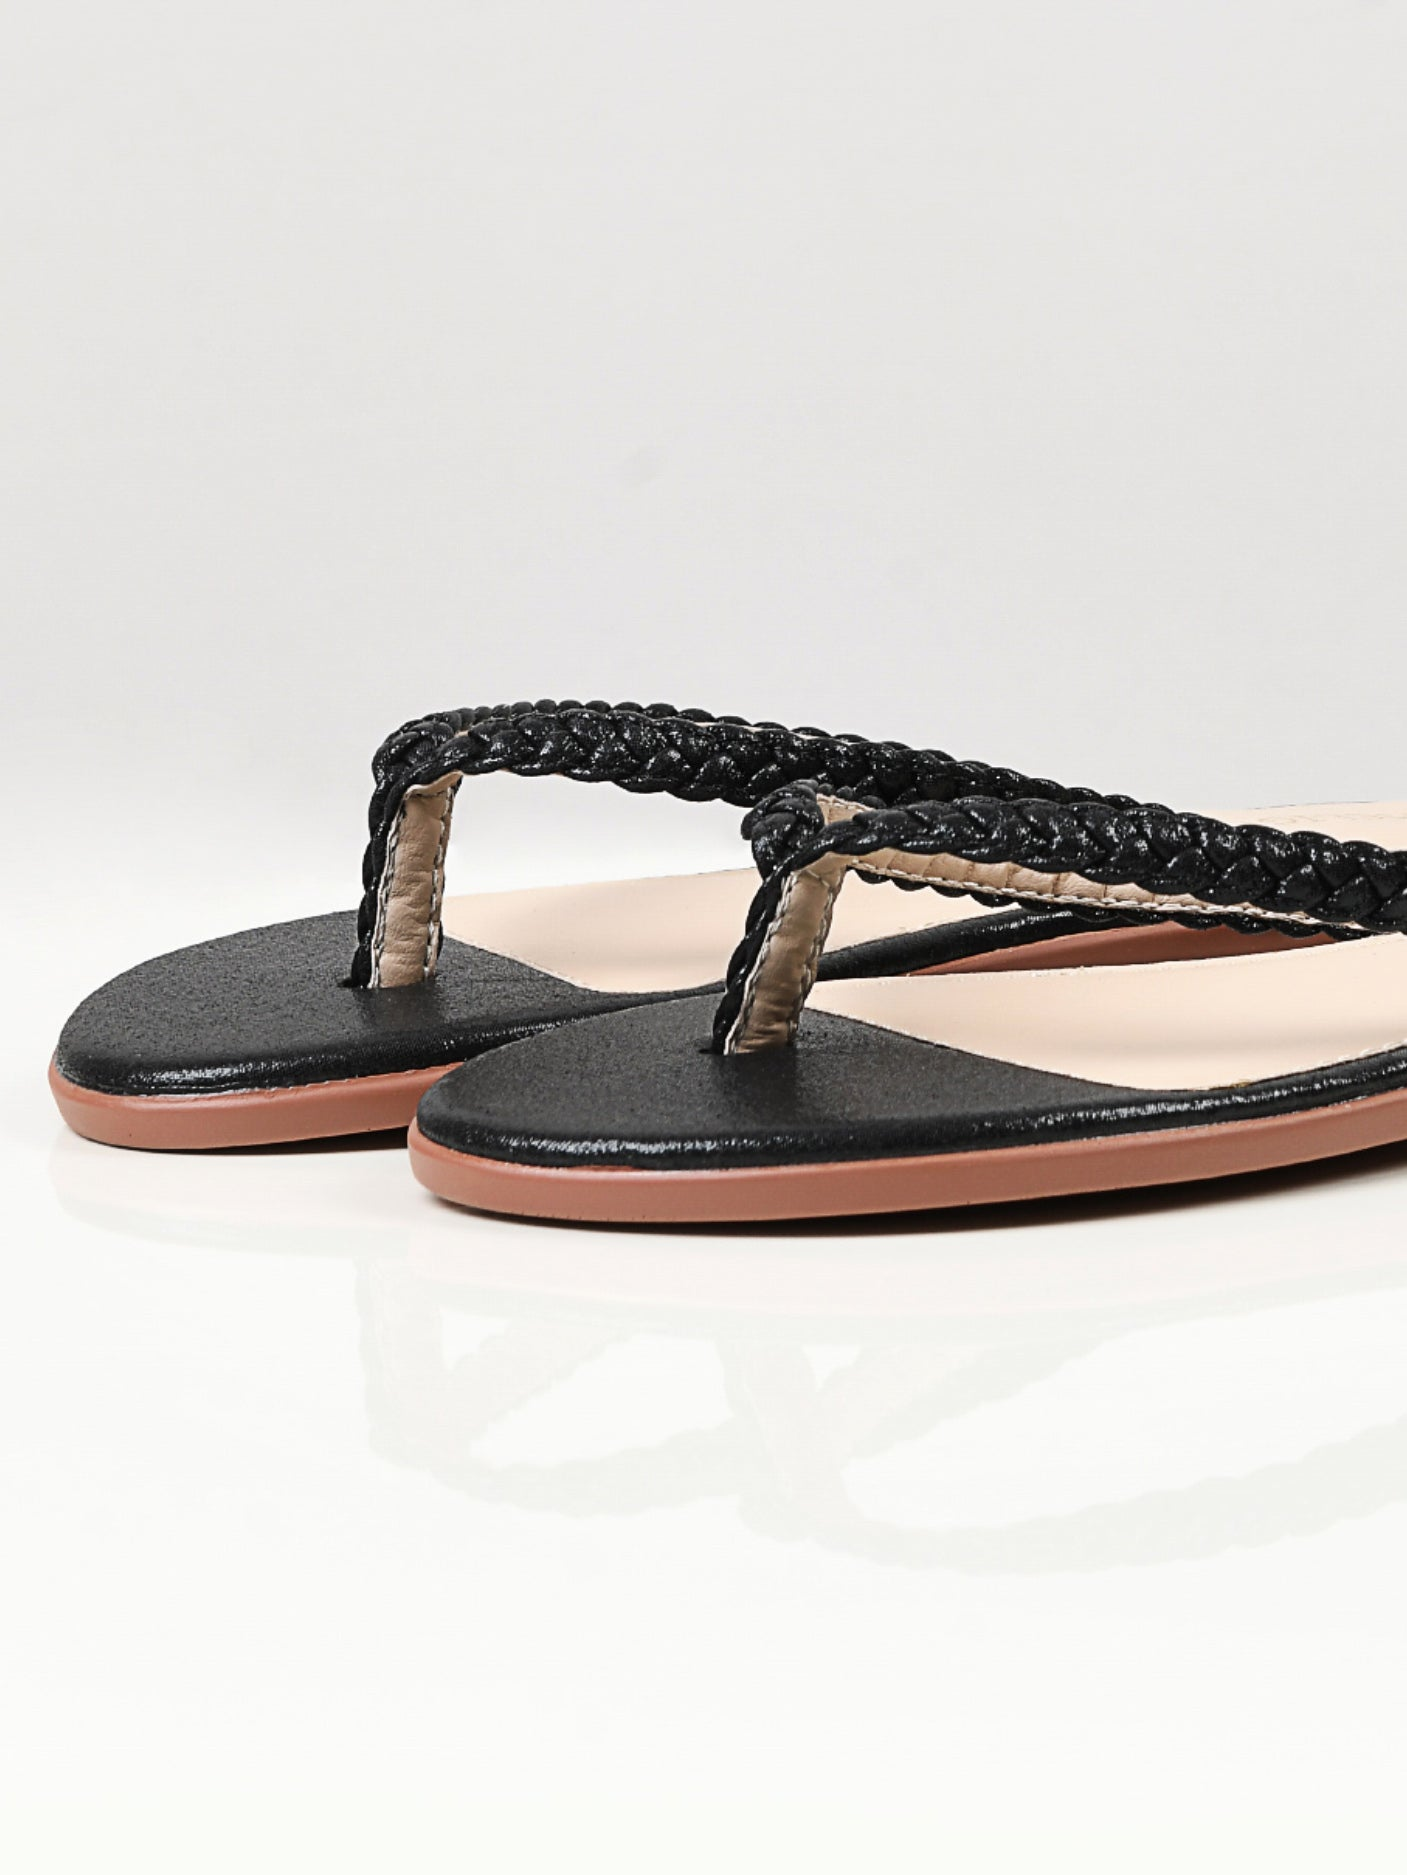 Shimmer Braided Flip Flops - Black